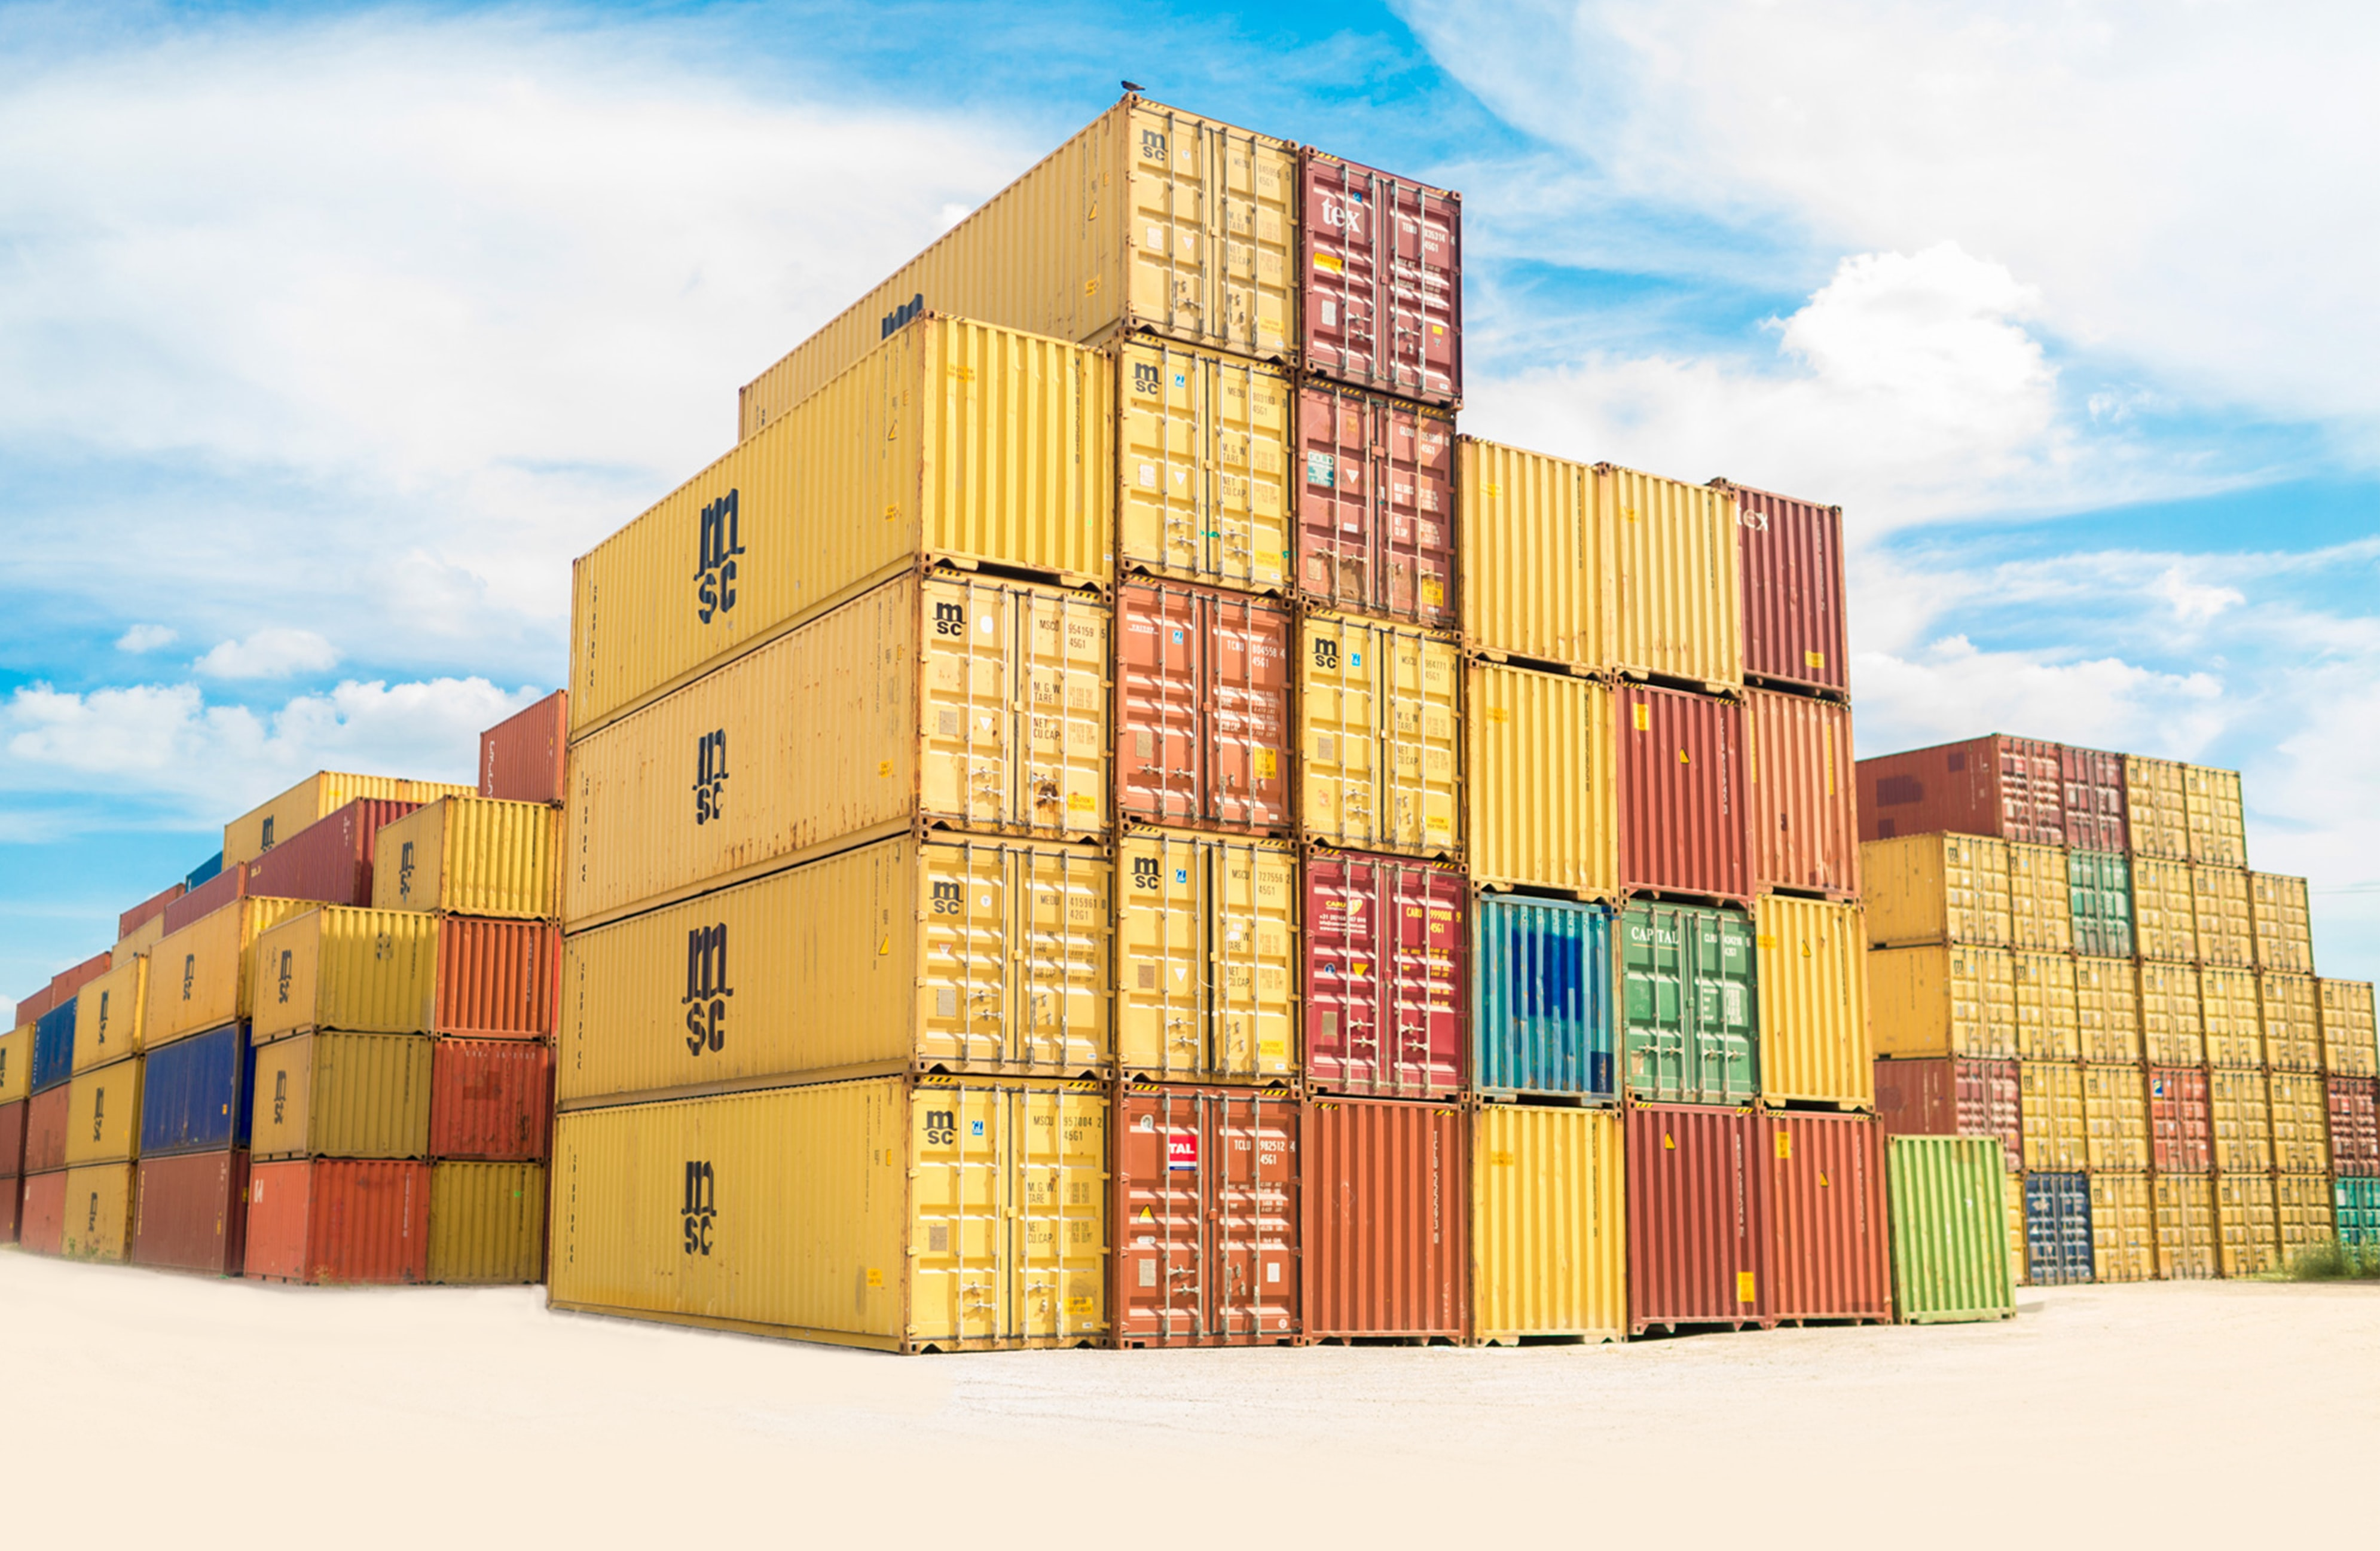 image from Container Upgrade - Experiences Updating Three Databases